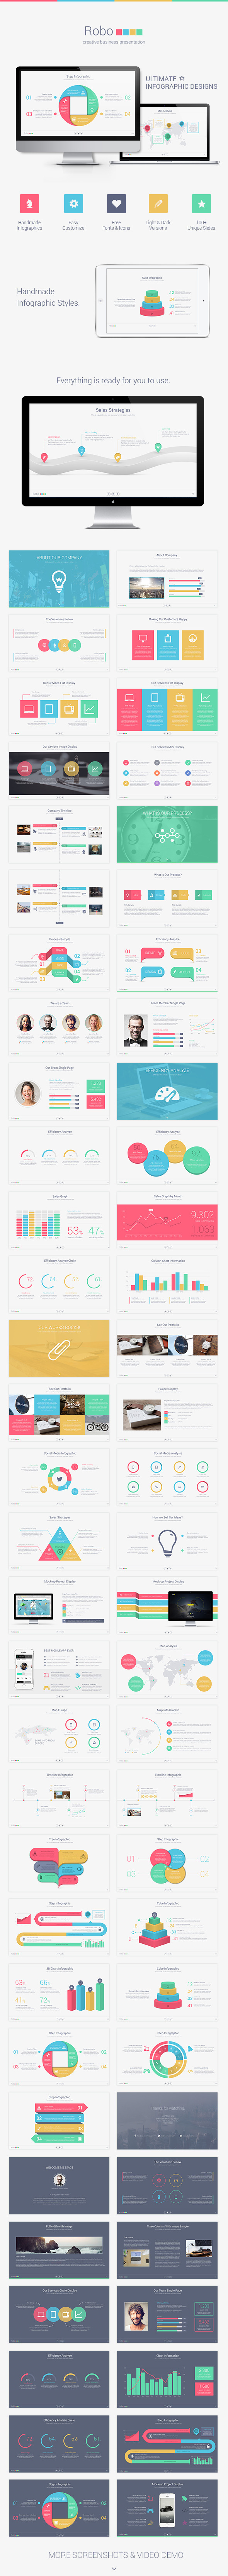 GraphicRiver Robo Keynote Presentation Template 8820860